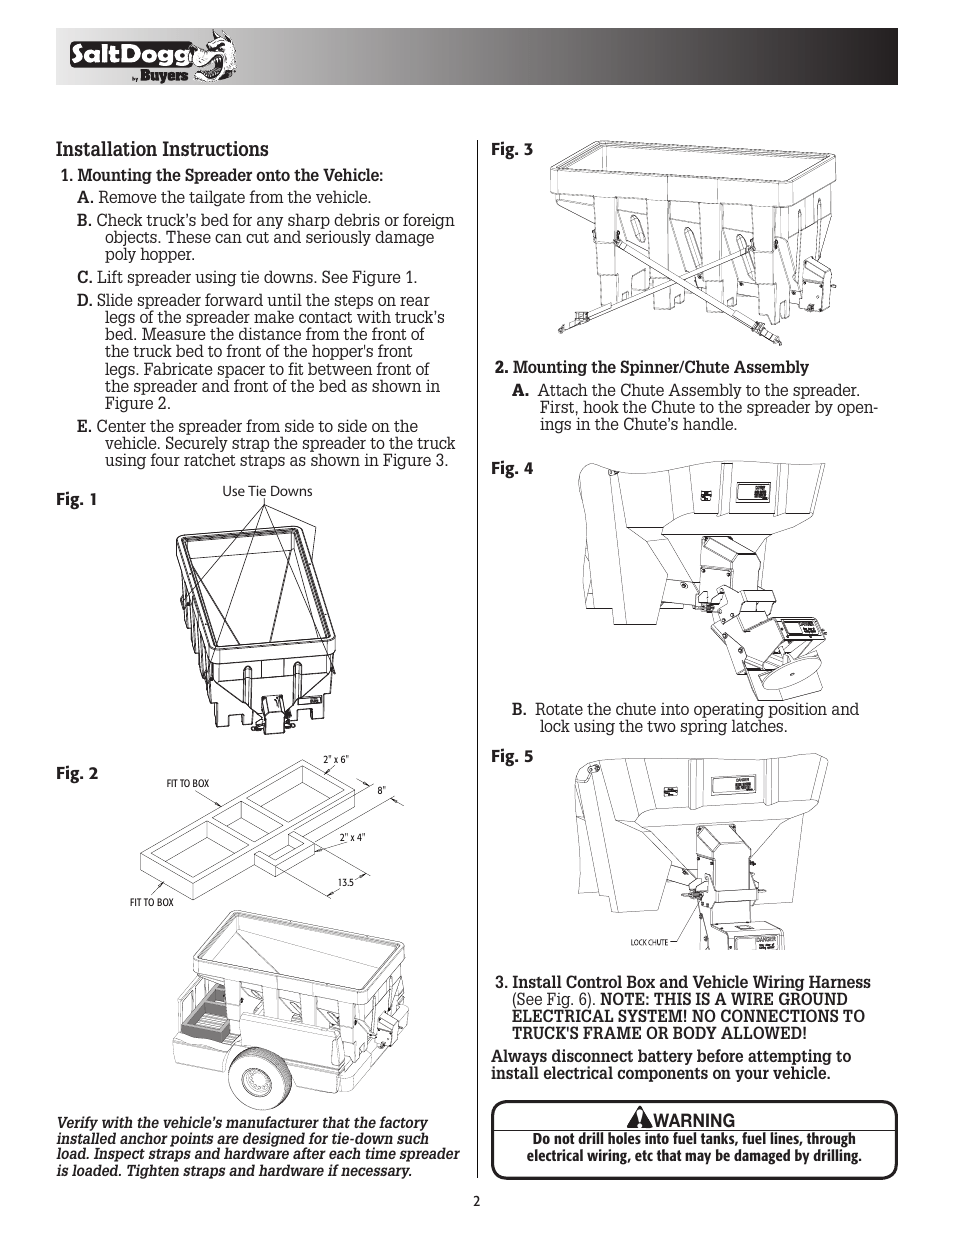 hight resolution of installation instructions saltdogg shpe1500 series electric drive poly hopper spreader v 2 user manual page 2 8